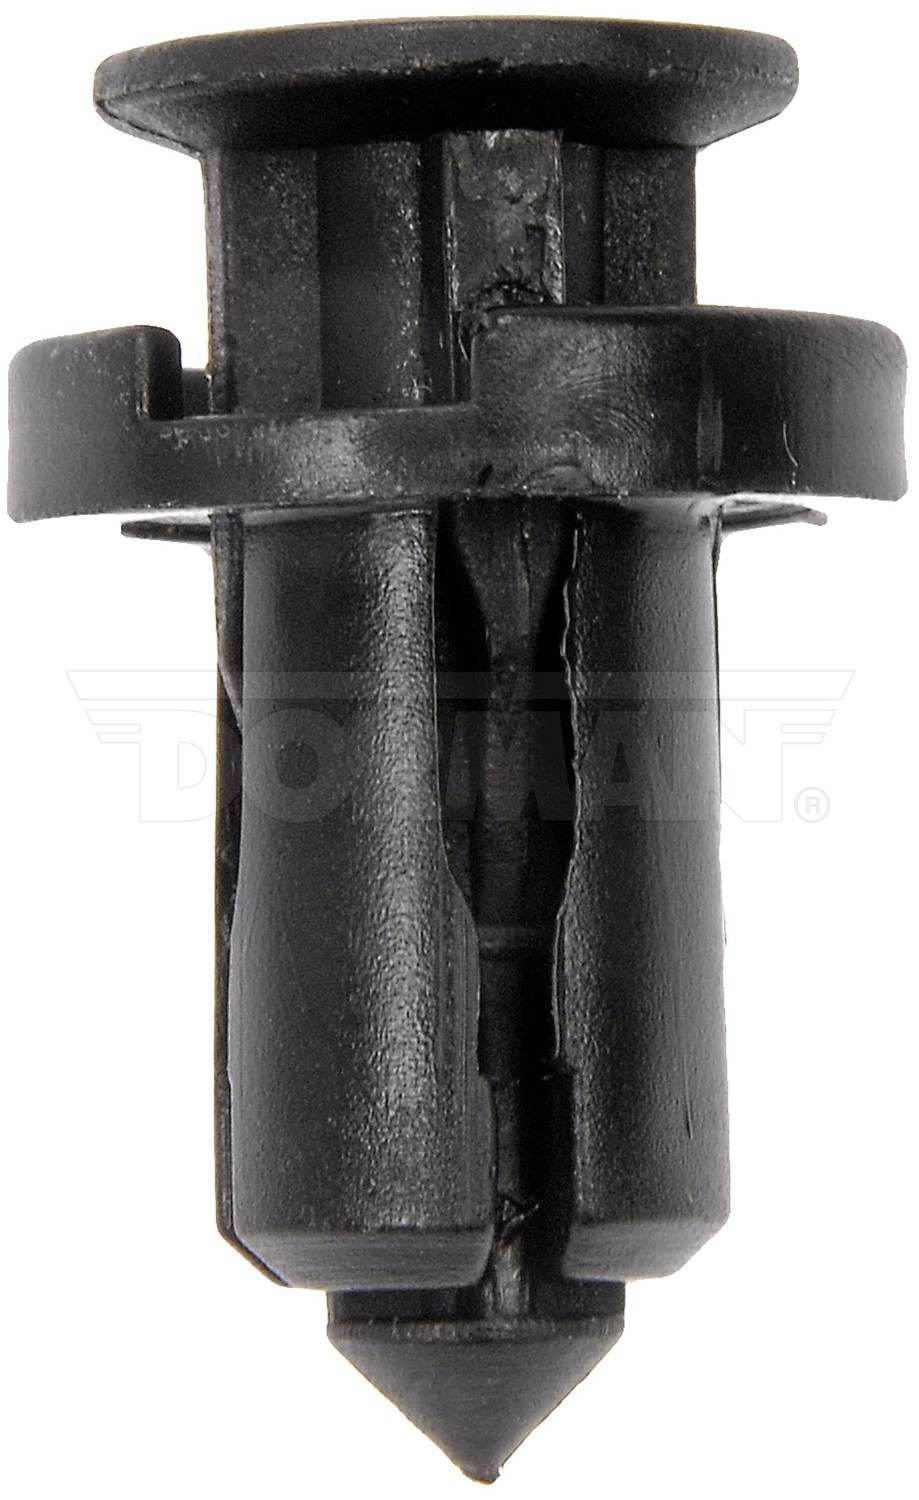 DORMAN - AUTOGRADE - Fender Molding Retainer - DOC 700-076